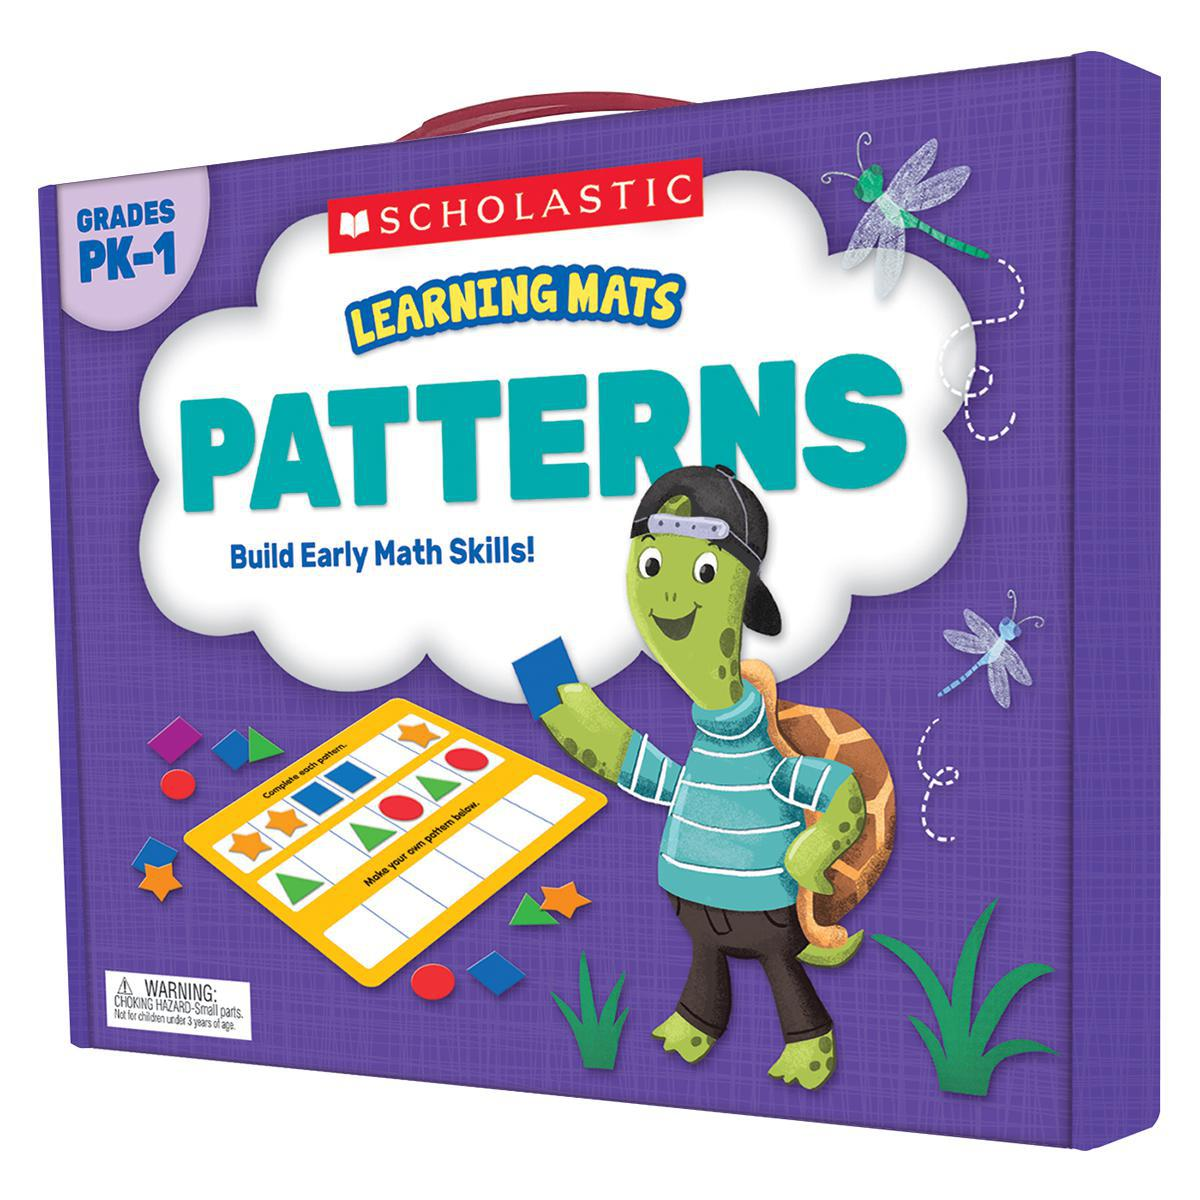 Learning Mats: Patterns